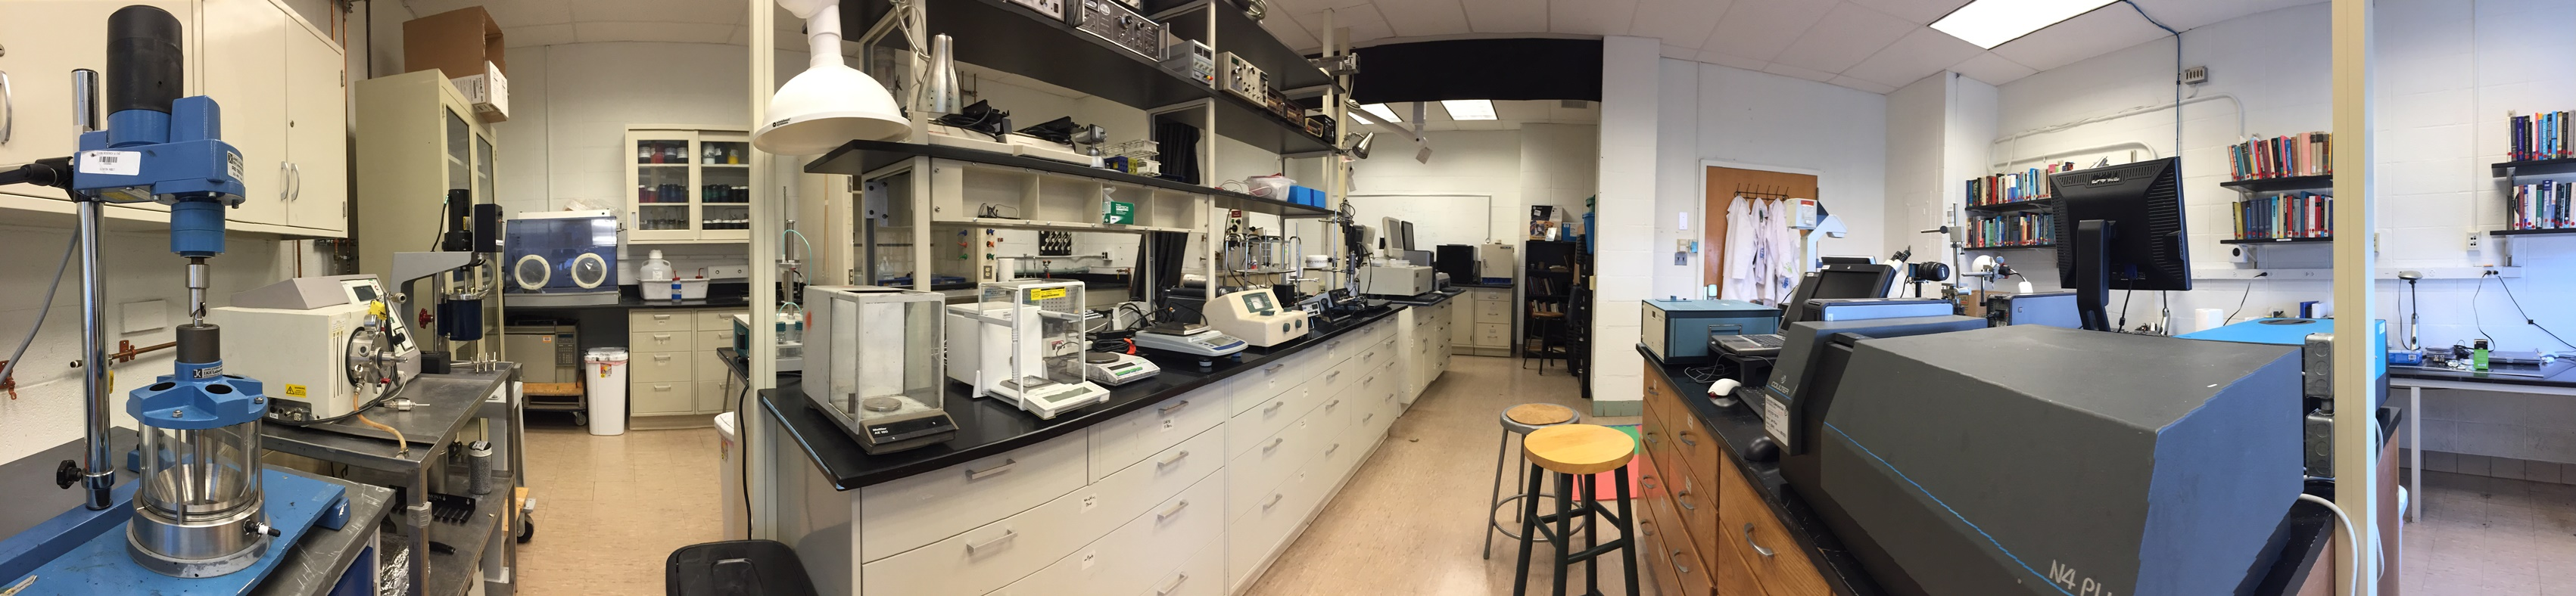 Preparation and Evaluation Lab Panoramic Photo Showing Various Pieces of Equipment